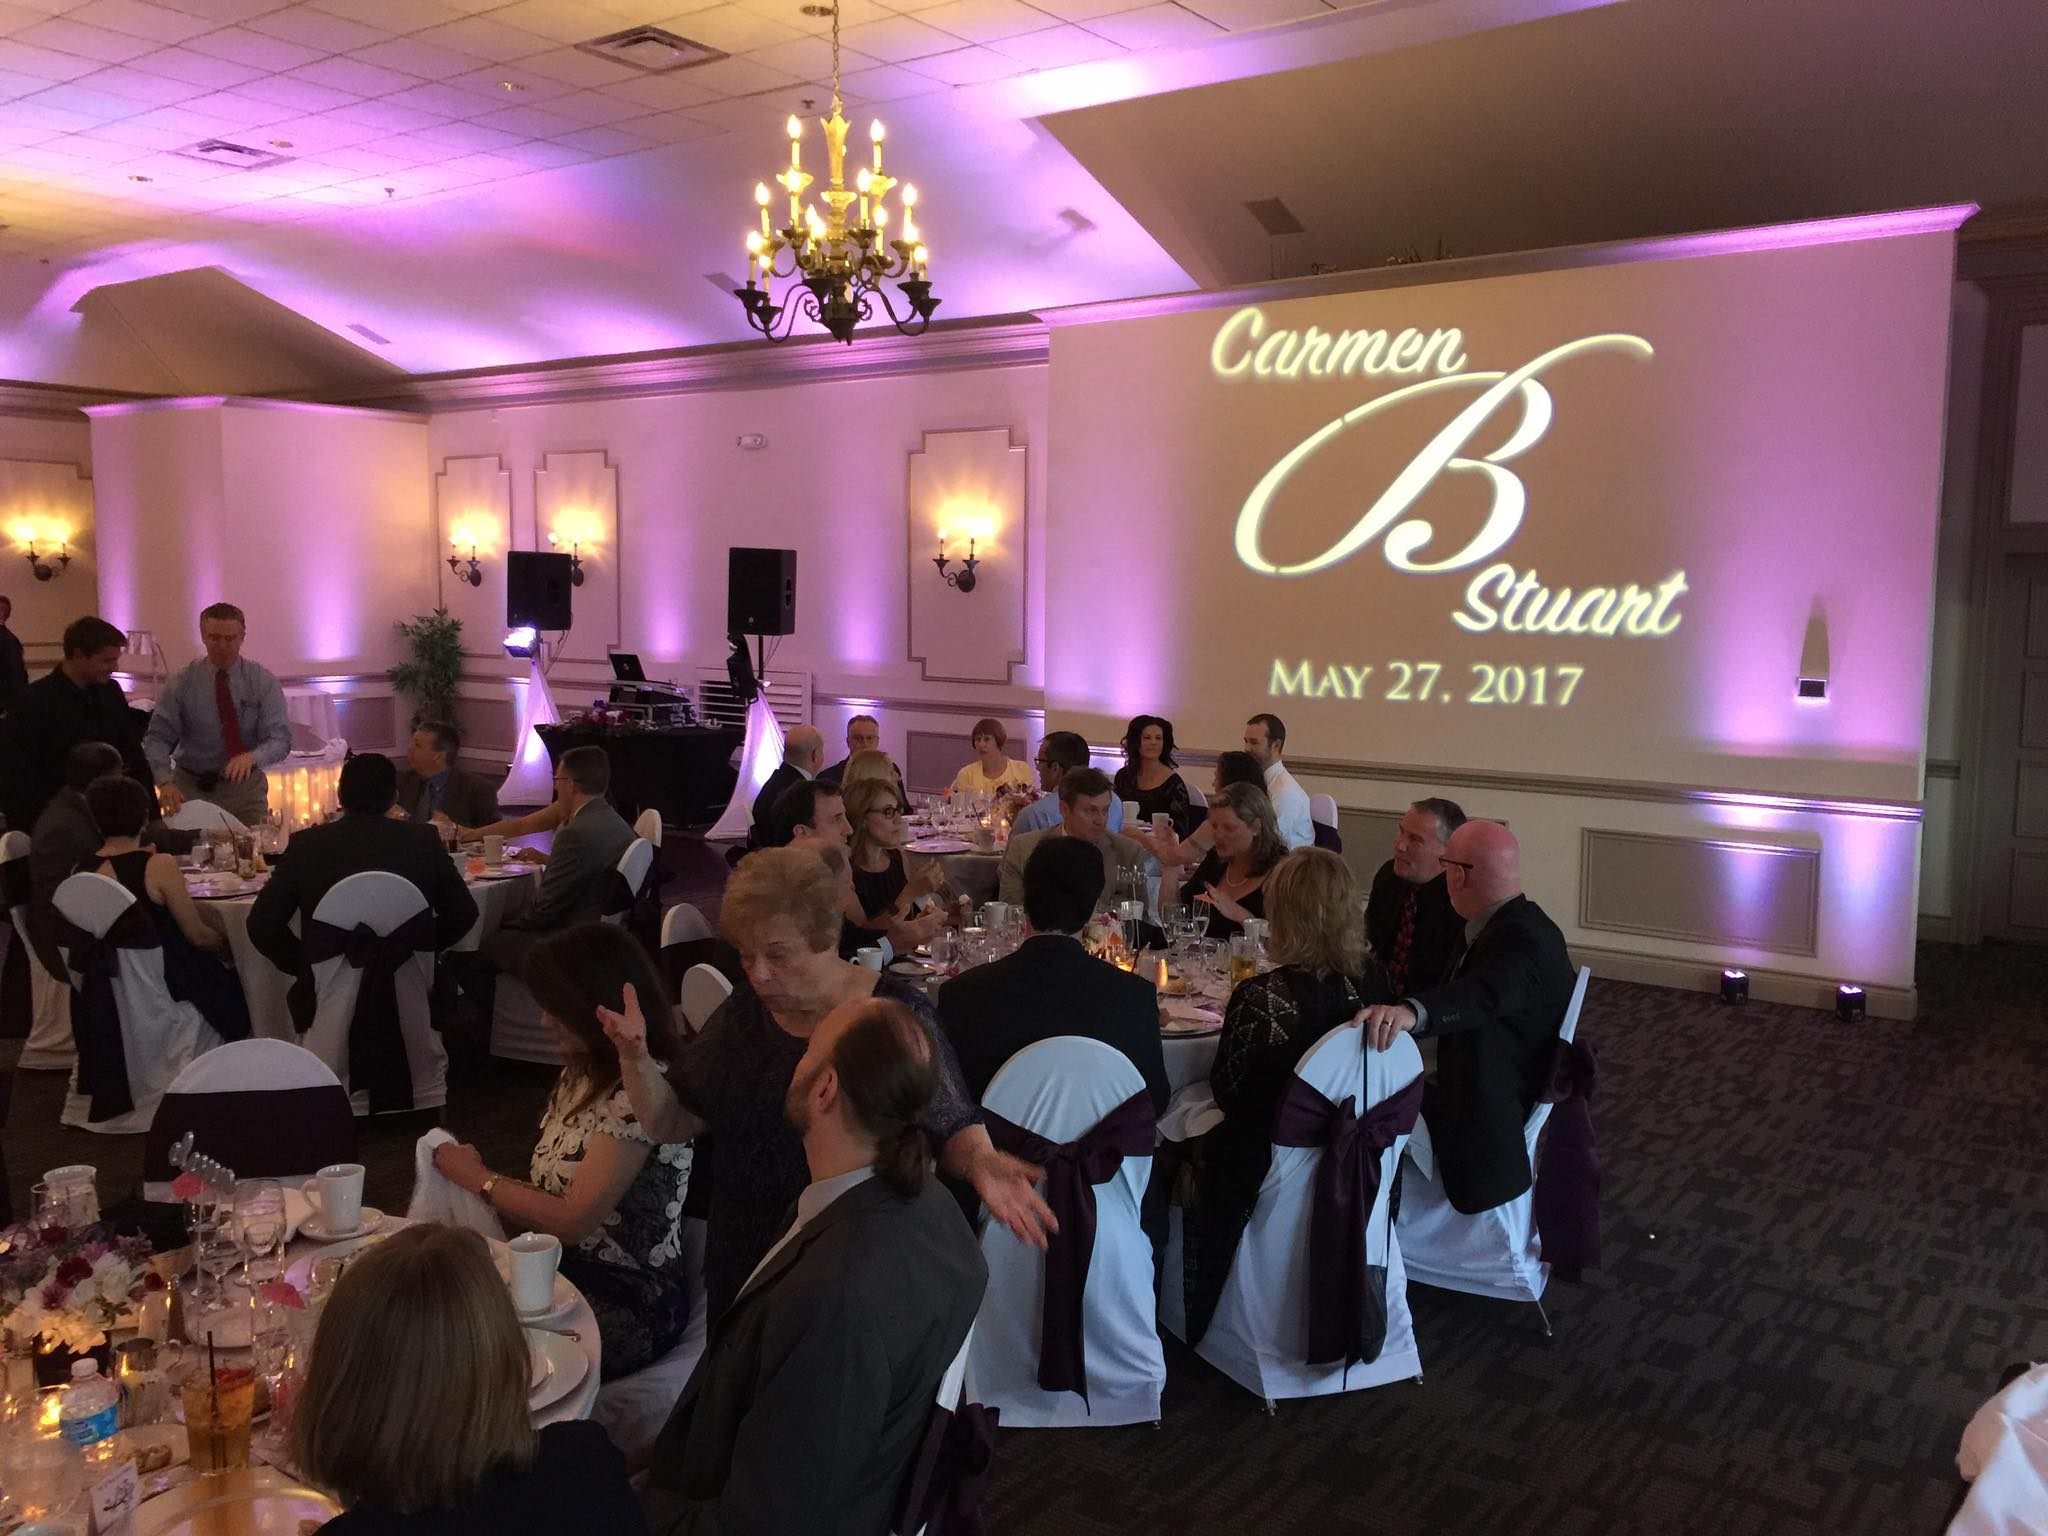 lights for weddings- pink uplighting rental in Michigan with custom gobo for weddings